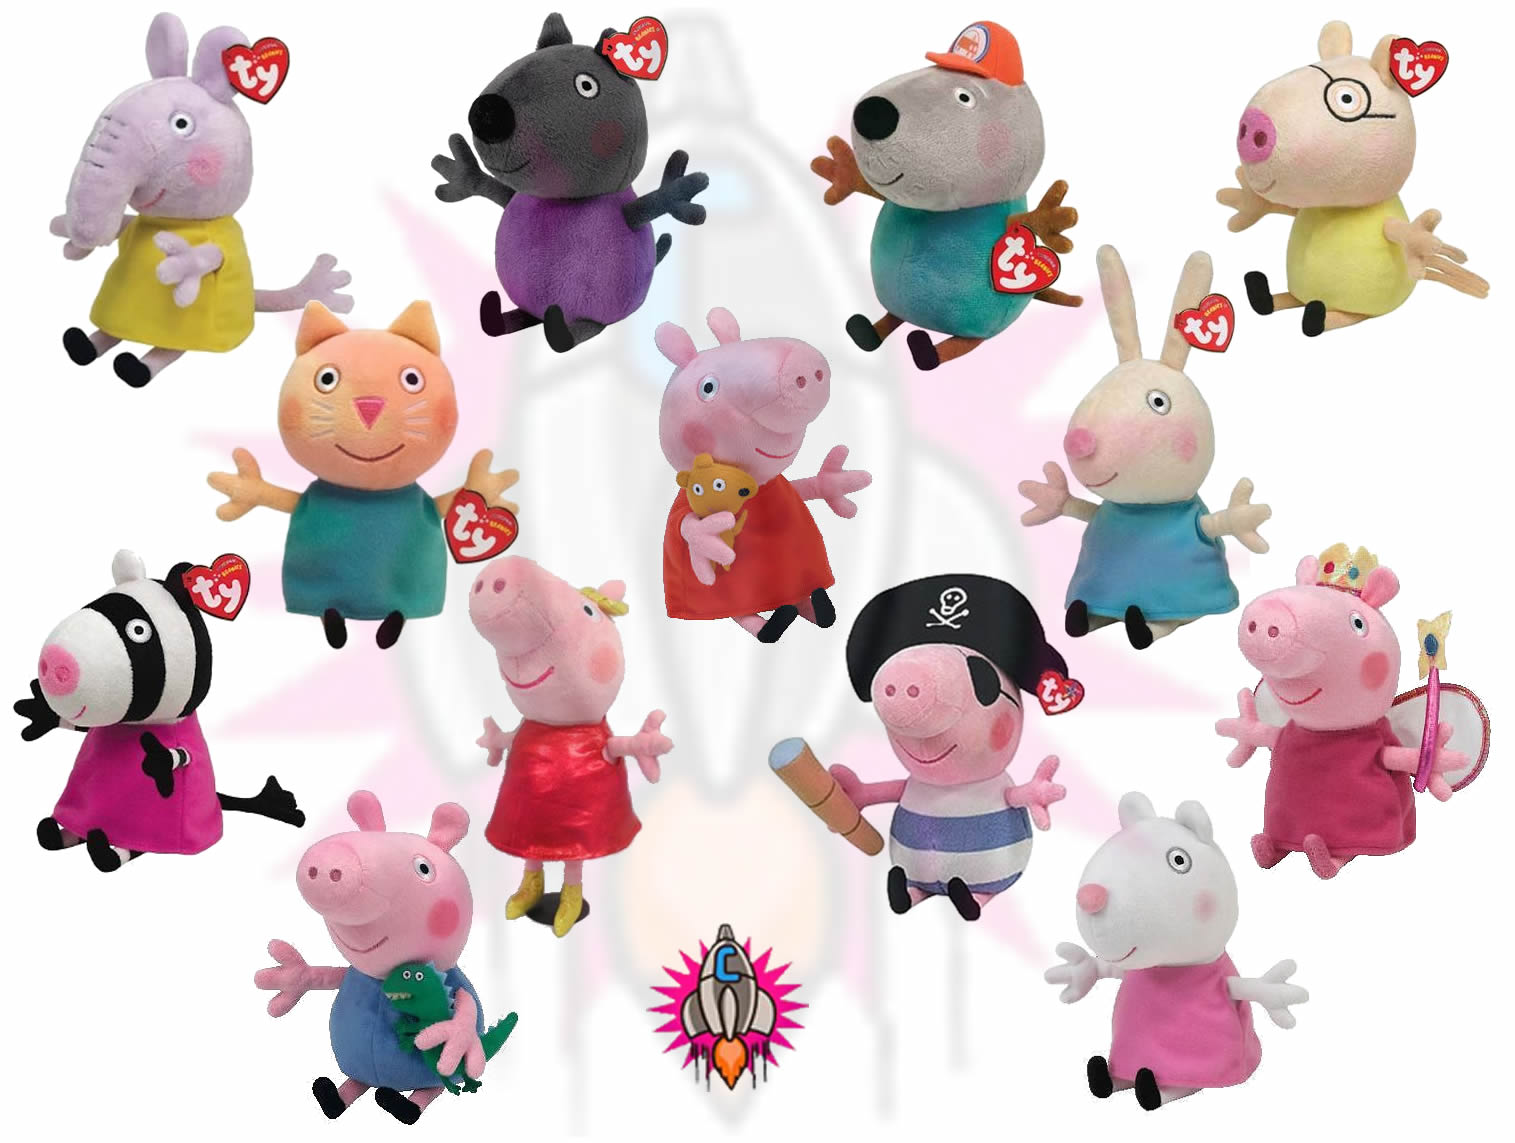 Toys And Friends : New ty beanie babies peppa pig and friends plush quot soft